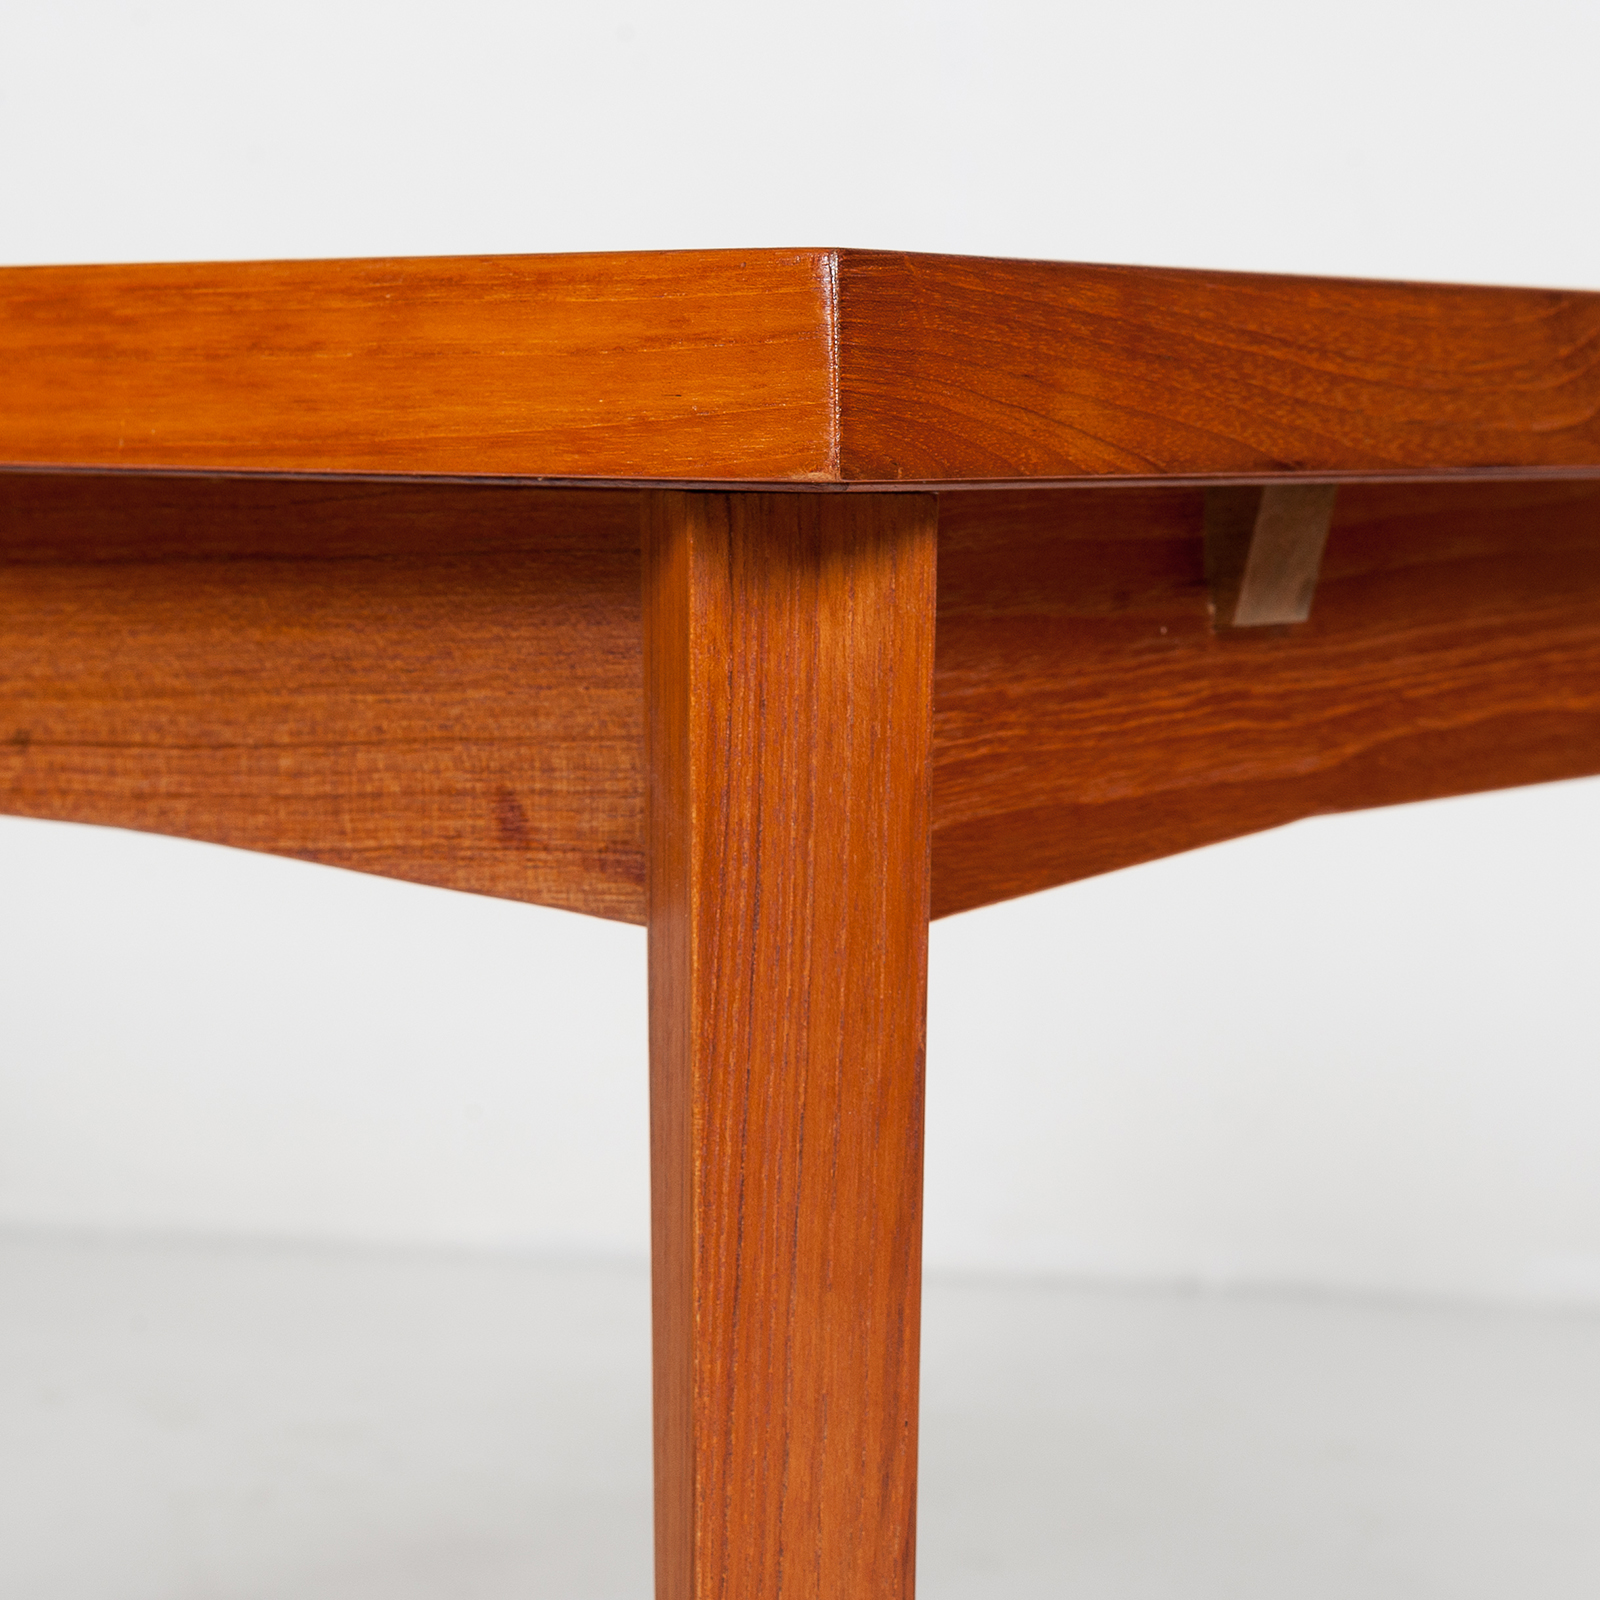 Dining Table In Teak With Concealed Top, 1960s, Denmark22